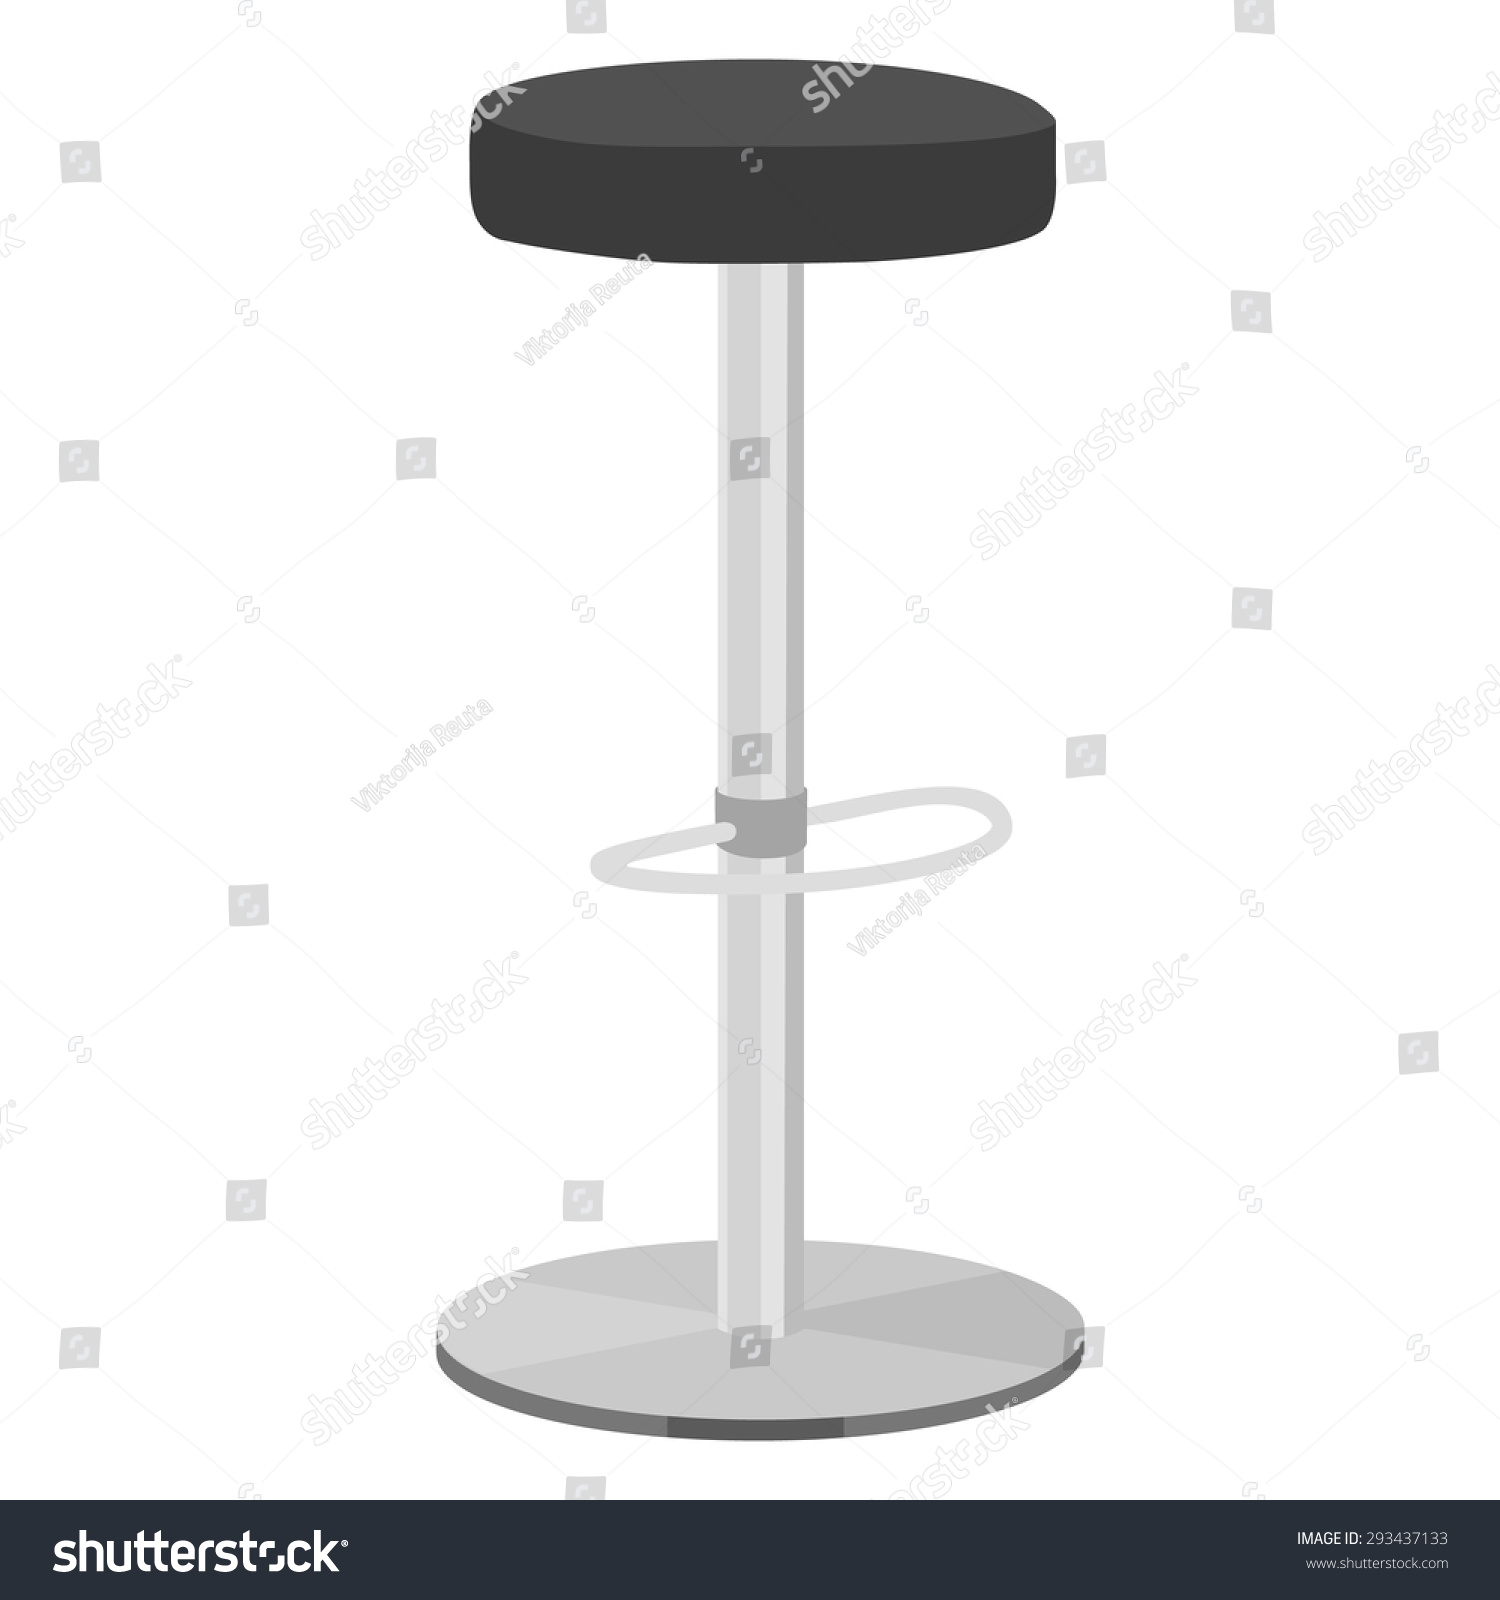 Black Bar Stool Vector Illustration Bar Chair High Chair  : stock vector black bar stool vector illustration bar chair high chair bar interior design 293437133 from www.shutterstock.com size 1500 x 1600 jpeg 155kB